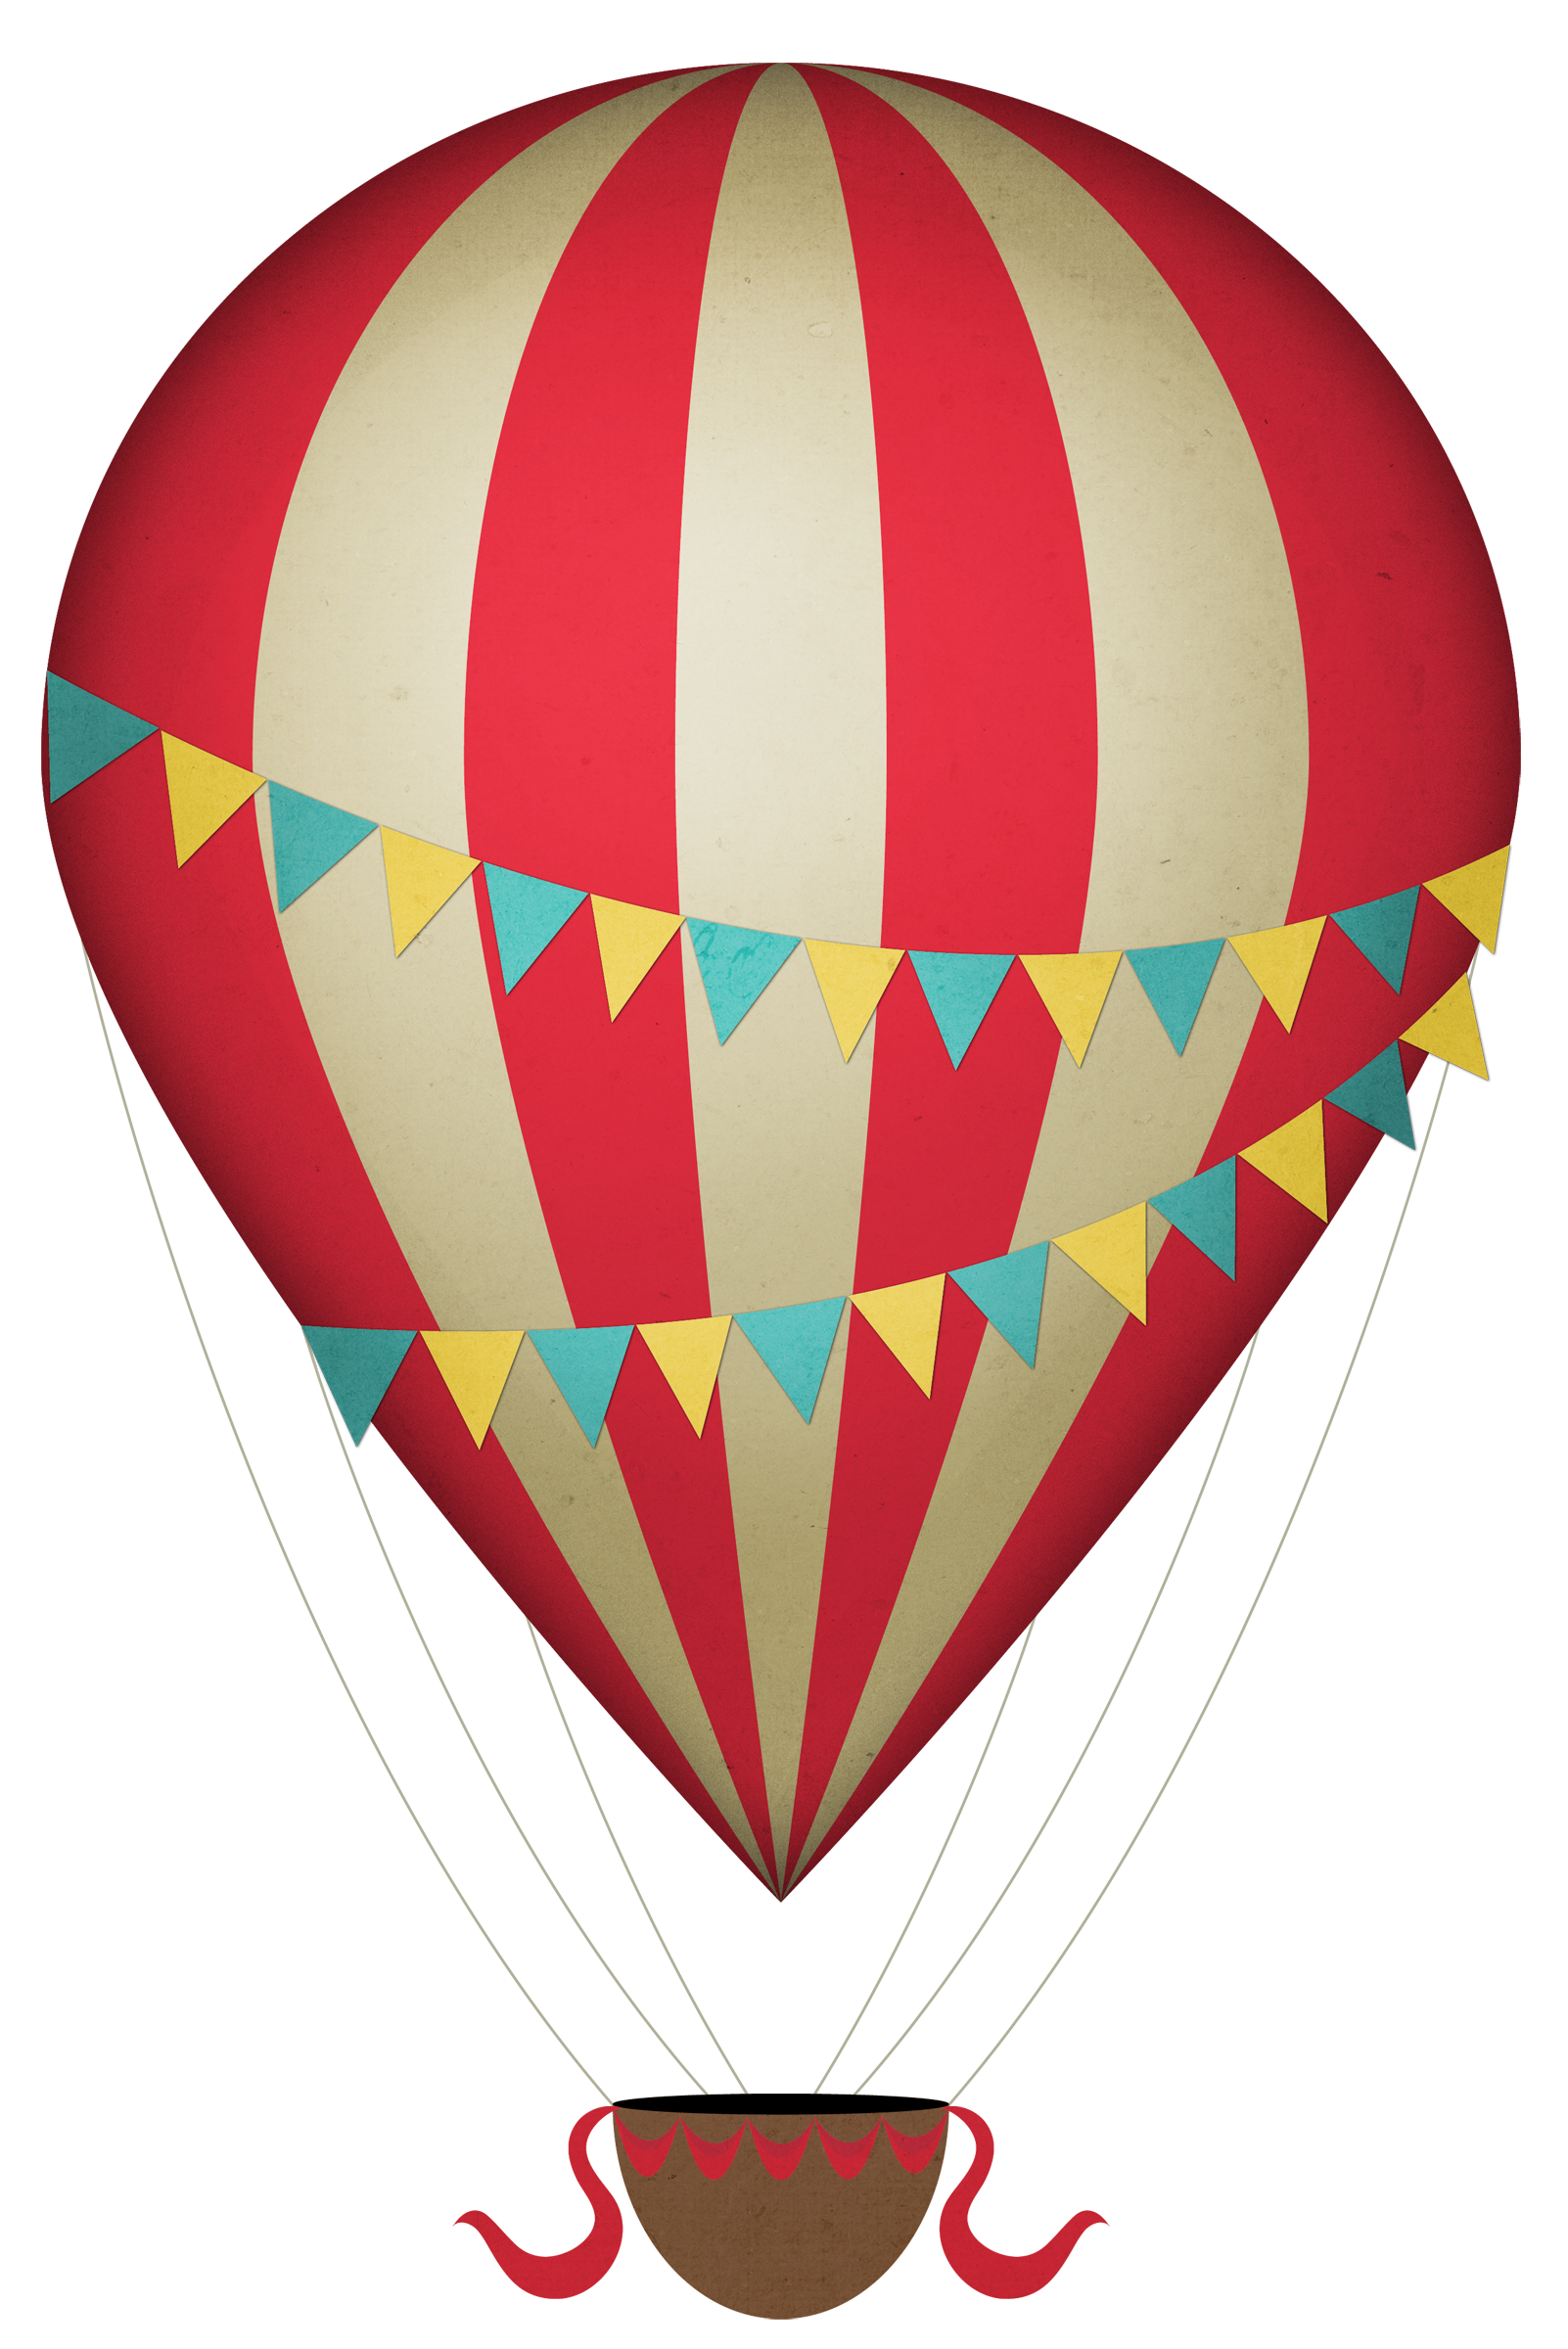 vintage 20hot 20air 20balloon 20clipart up inspiration rh pinterest co uk clipart hot air balloon basket clipart hot air balloon basket